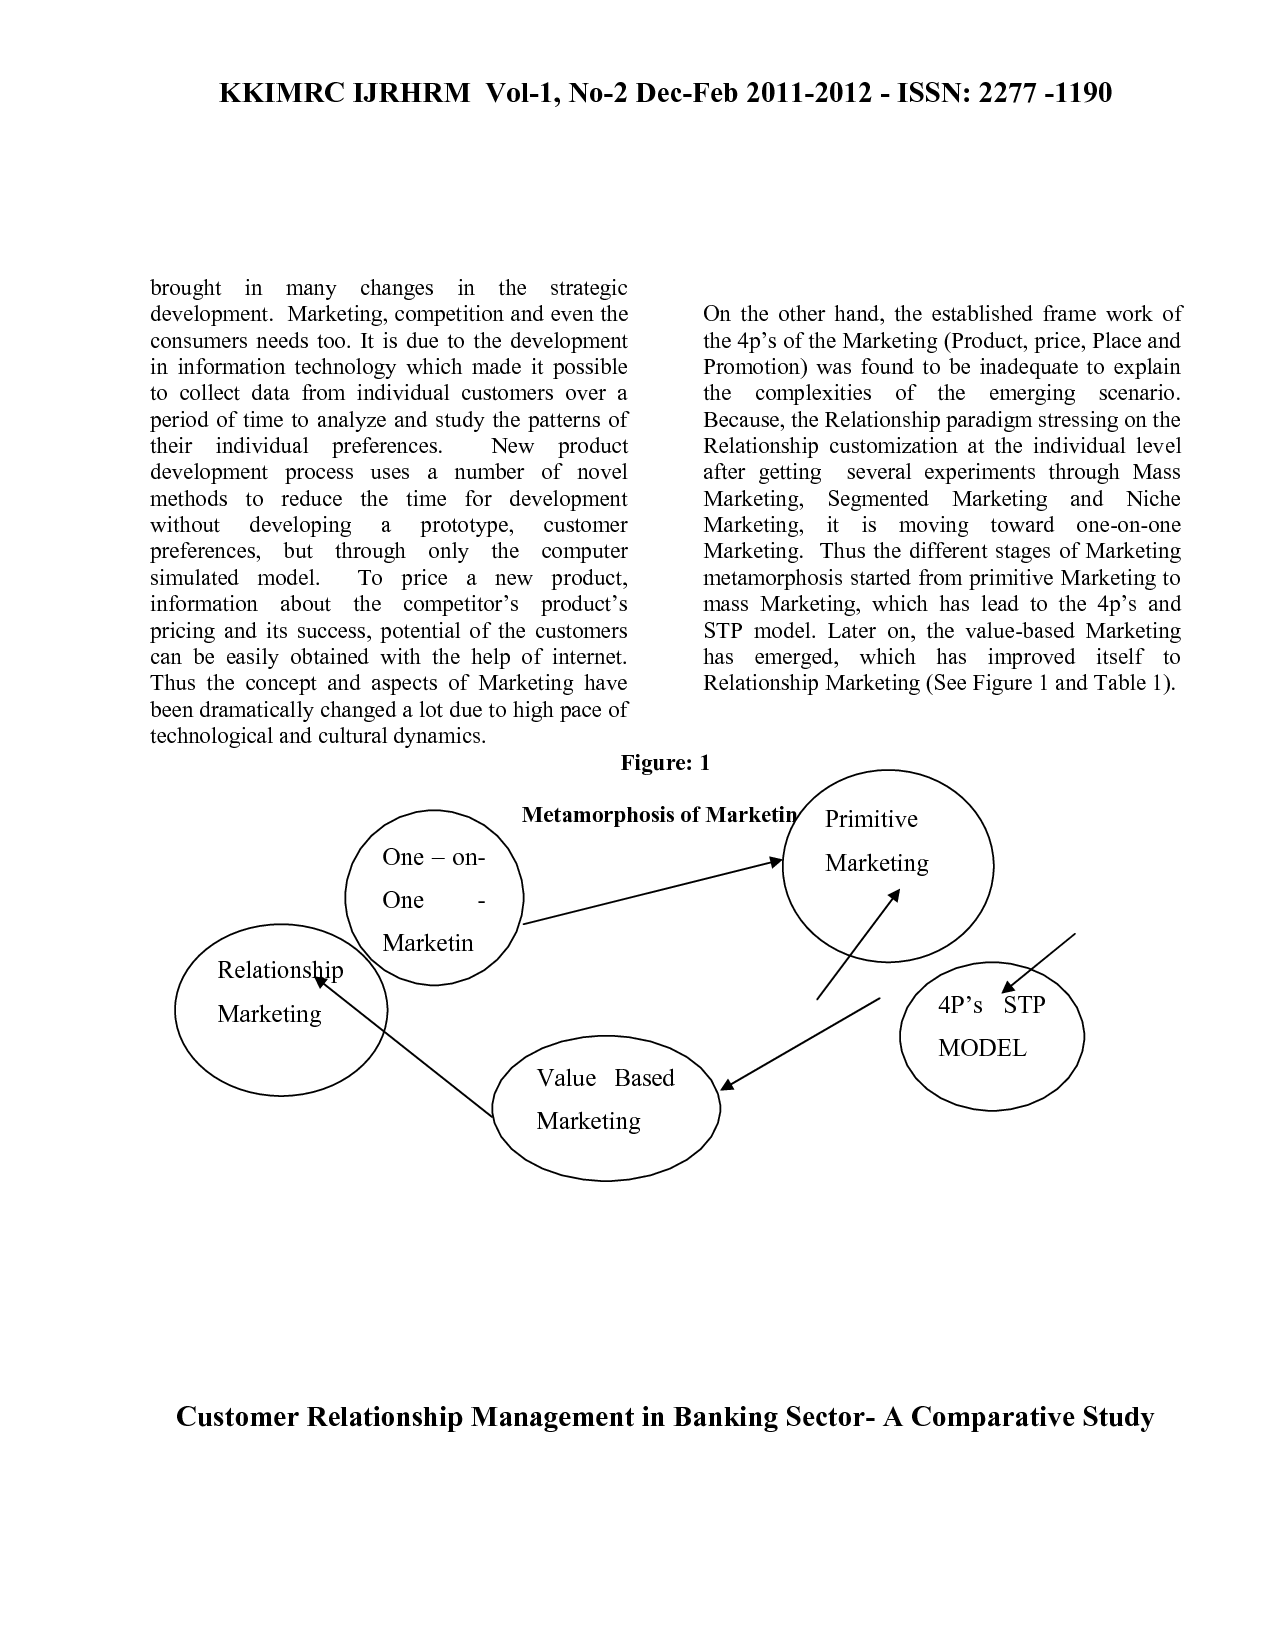 e enabled relationship management in banking sector A dissertation on customer relationship management and importance of relationship marketing in the banking sector this project report is being submitted as a part of the requirements of the mba program of bangalore university.